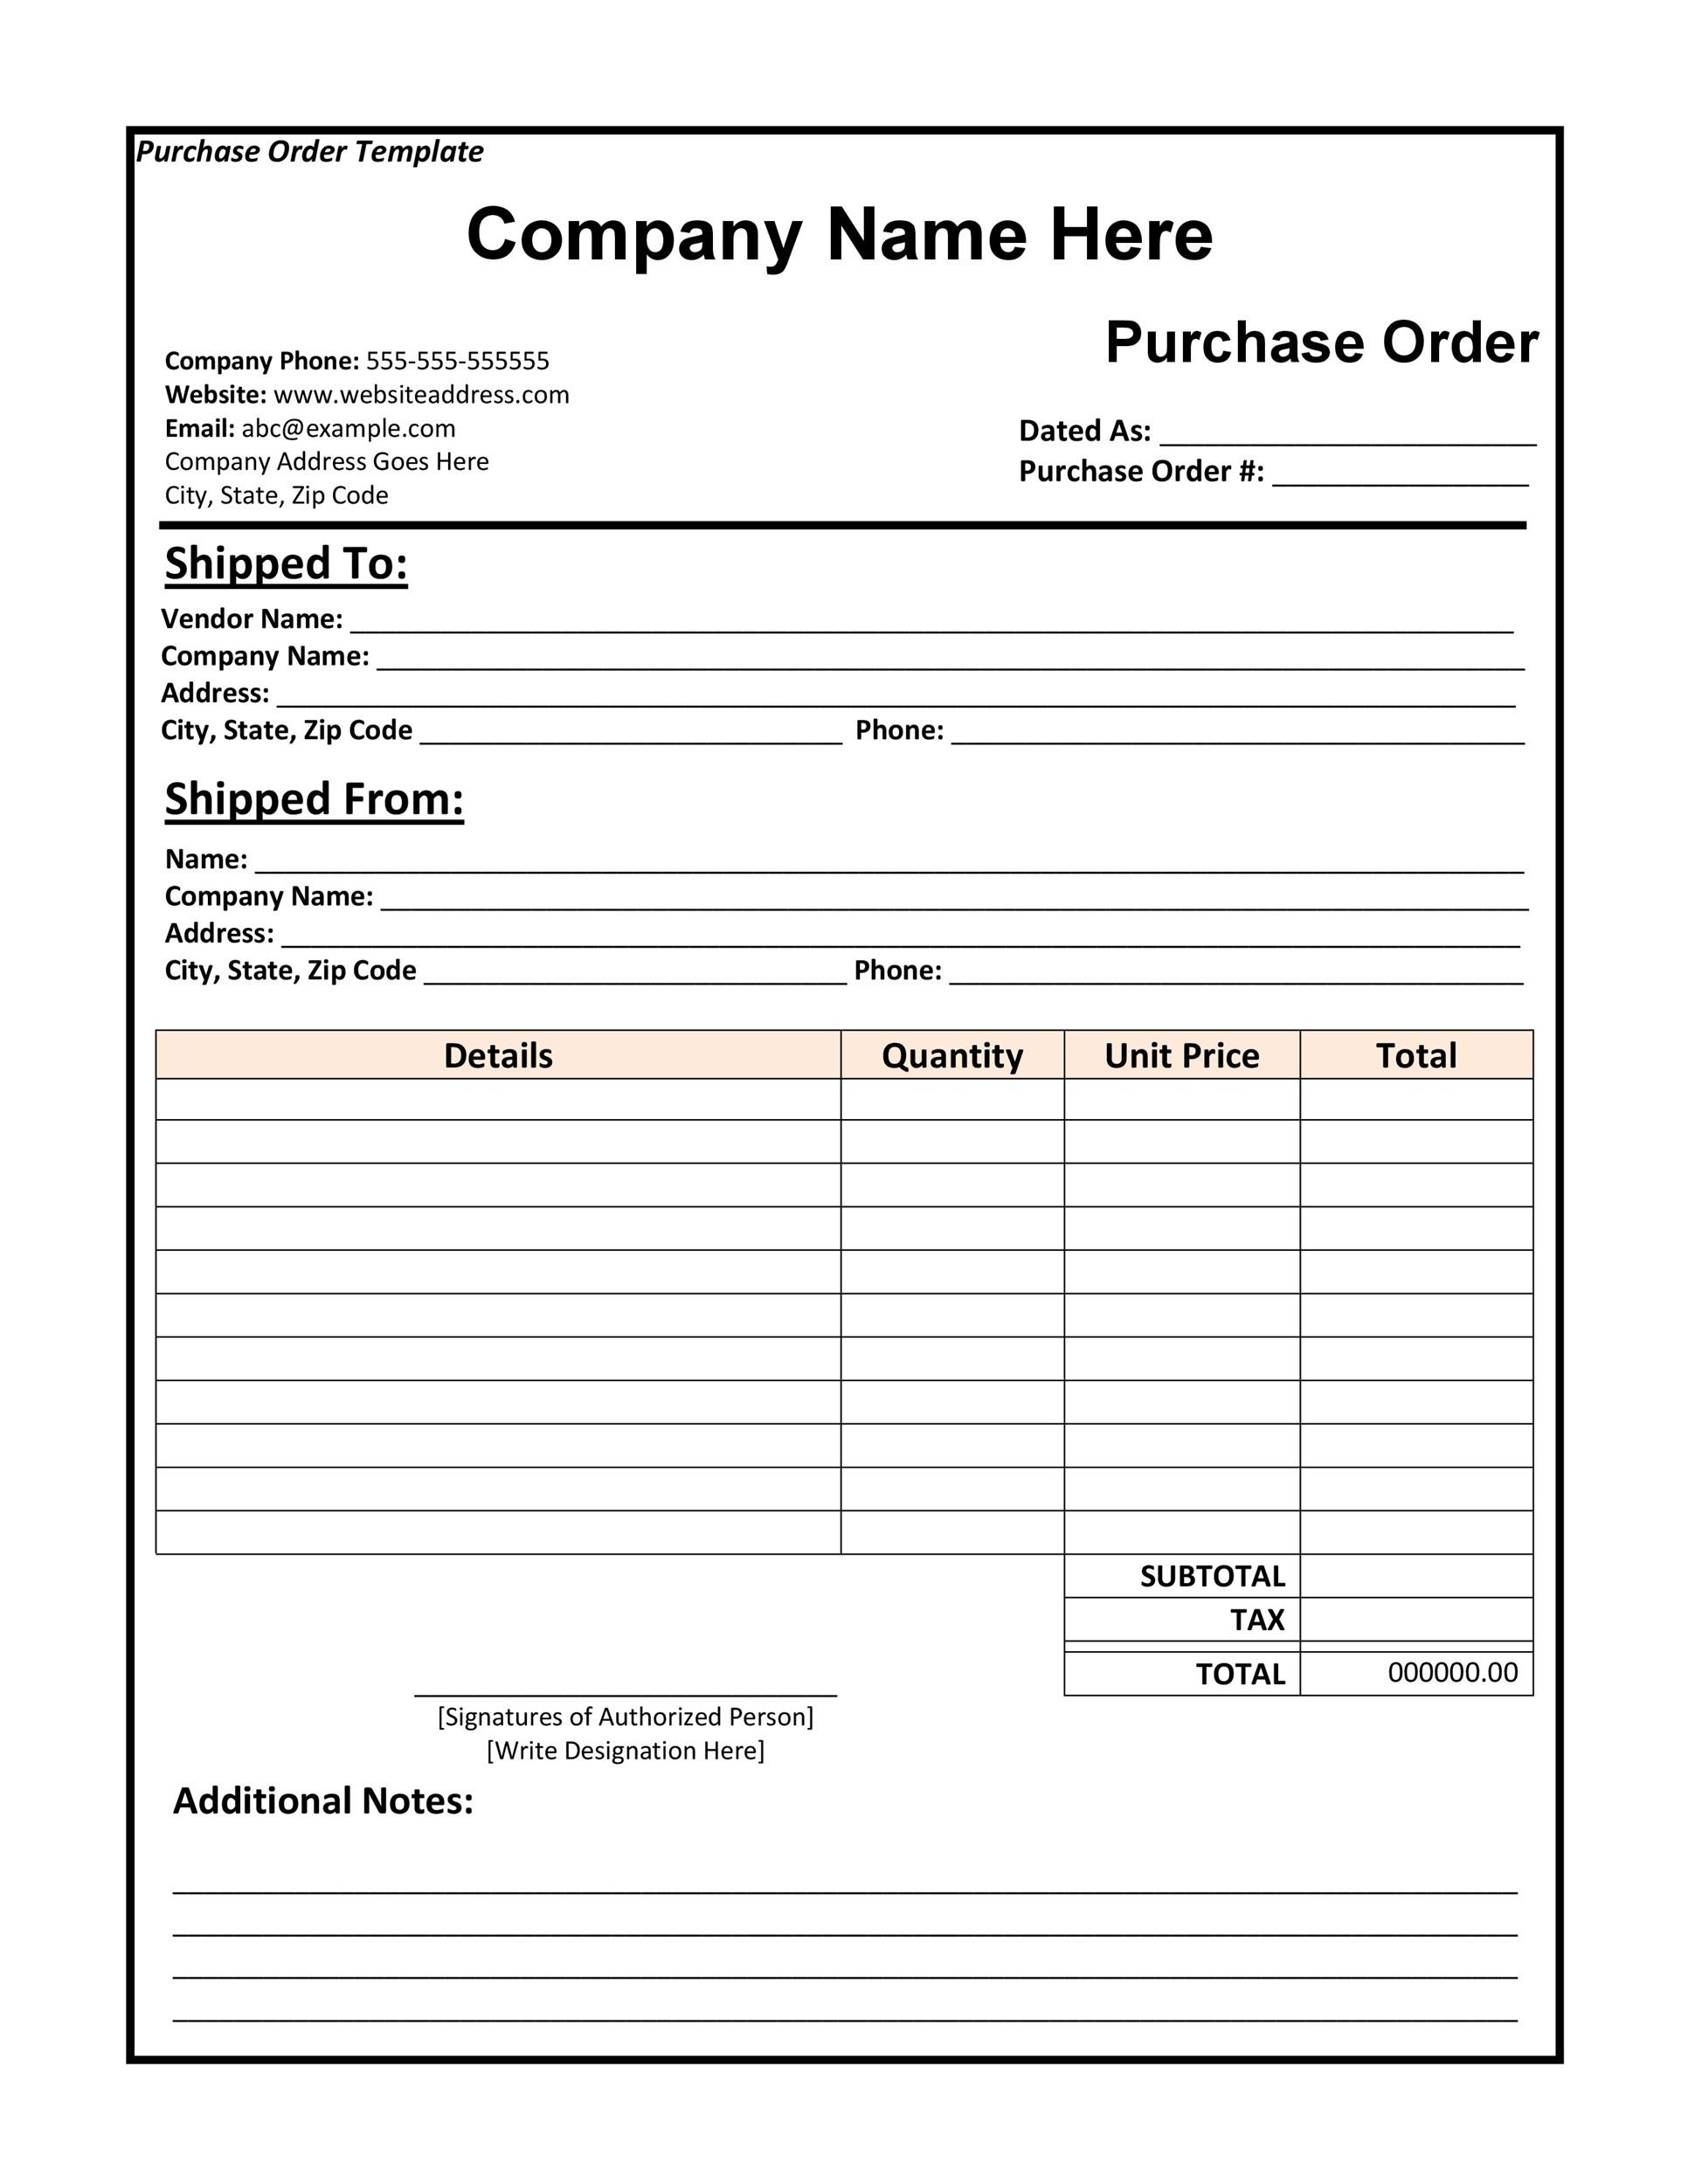 Local Purchase Order Template 37 Free Purchase Order Templates In Word & Excel